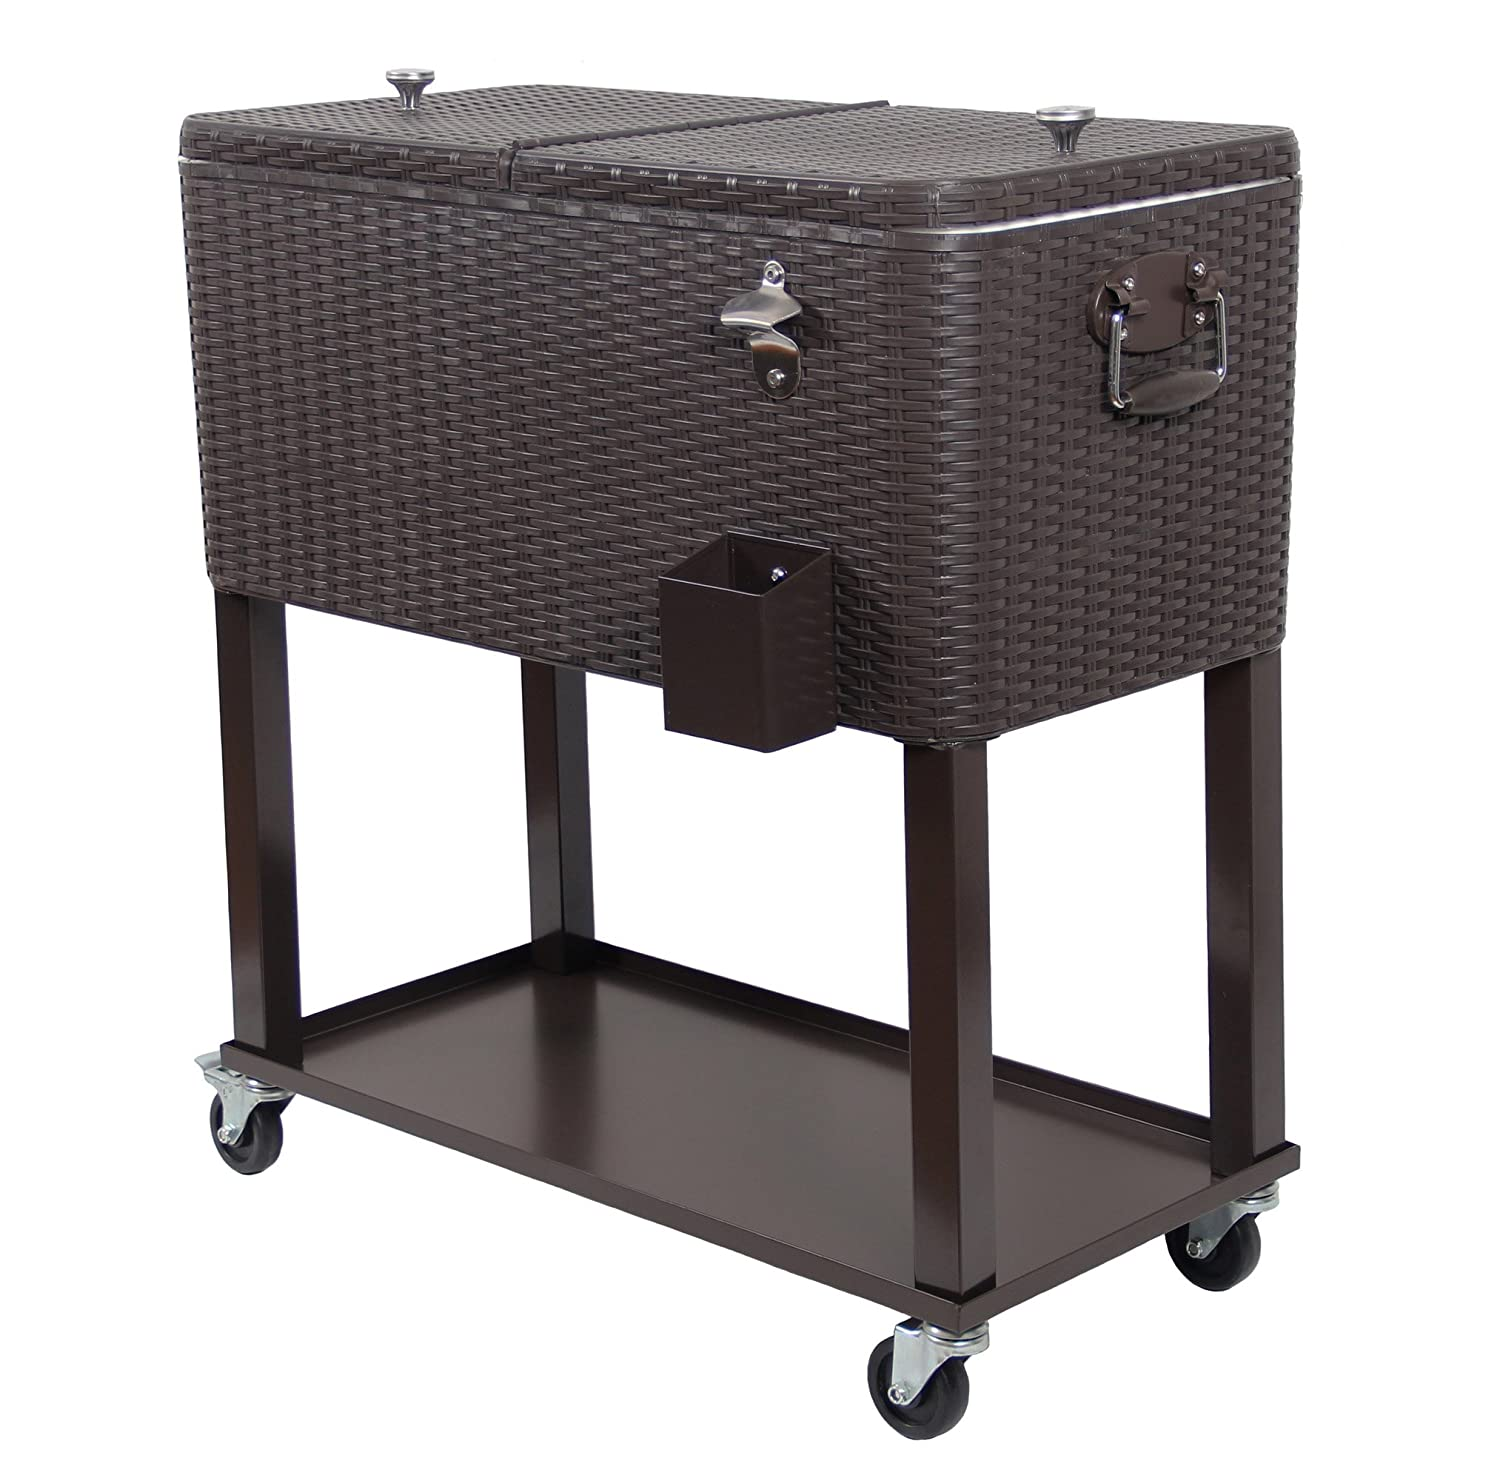 Amazon.com : UPHA 80 Quart Patio Ice Chest Cooler Cart On Wheel With Shelf  : Garden U0026 Outdoor